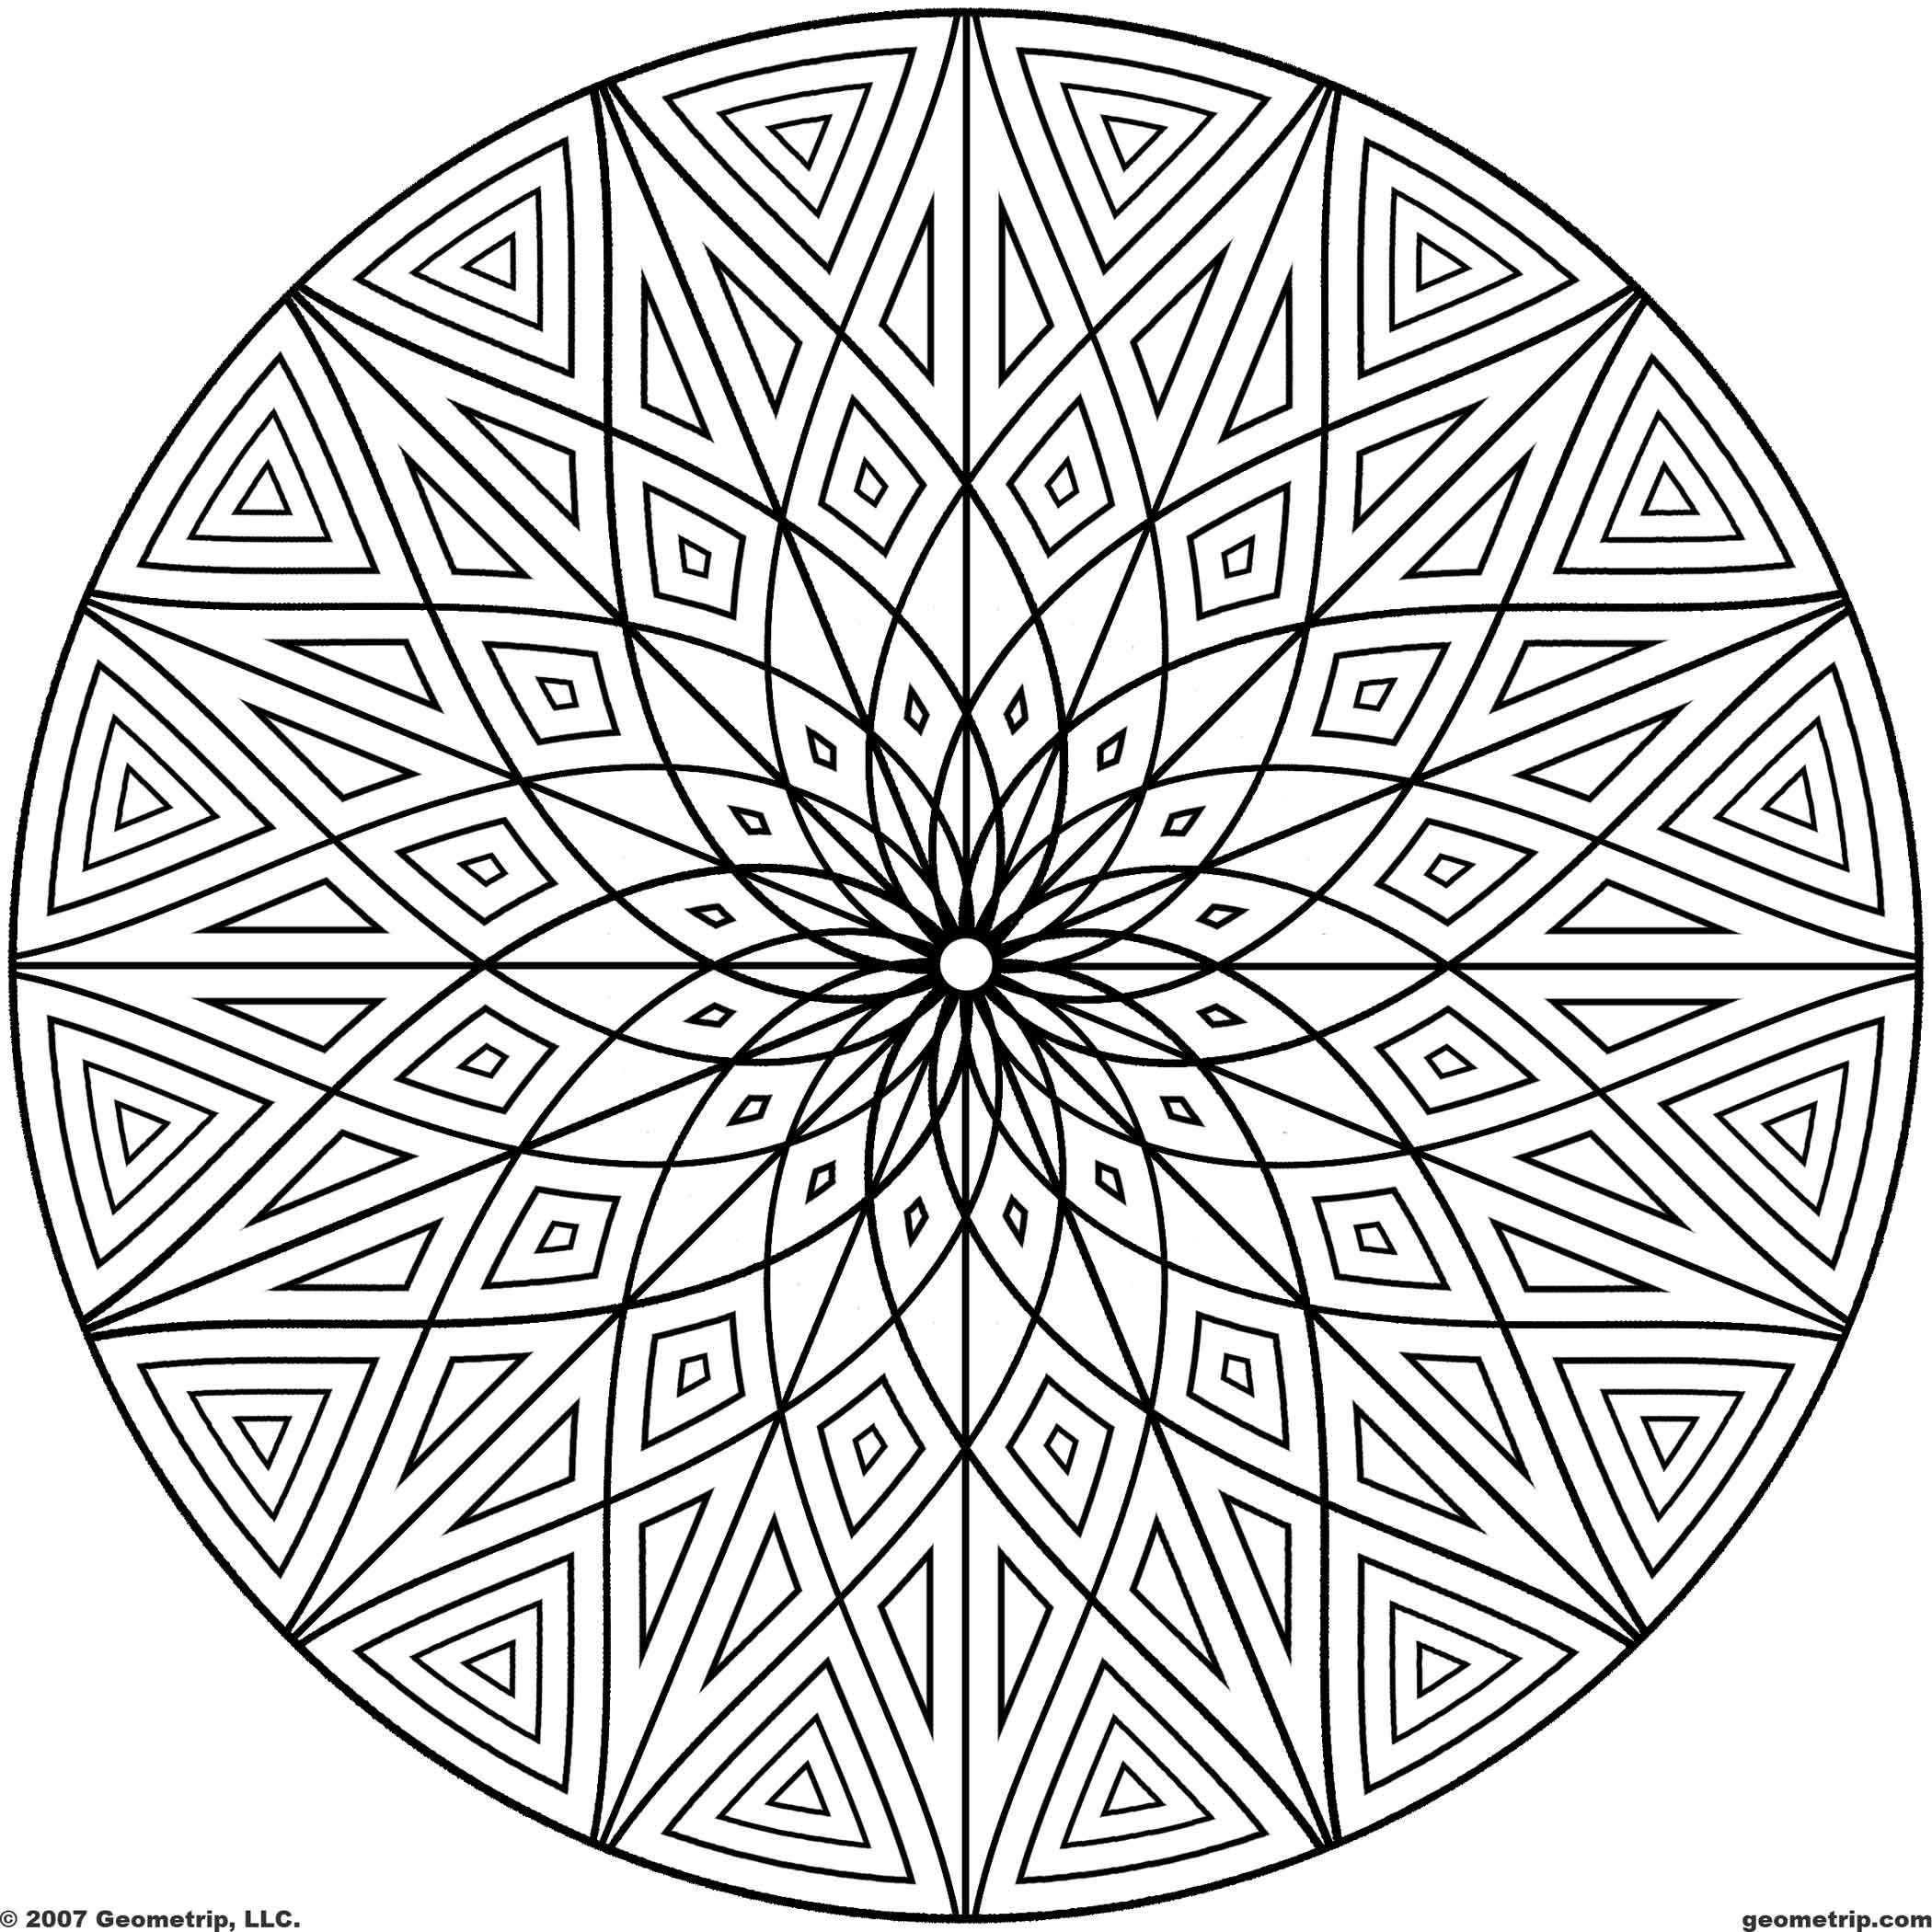 cool designs to color in free coloring pages printable abstract coloring pages color cool designs to in